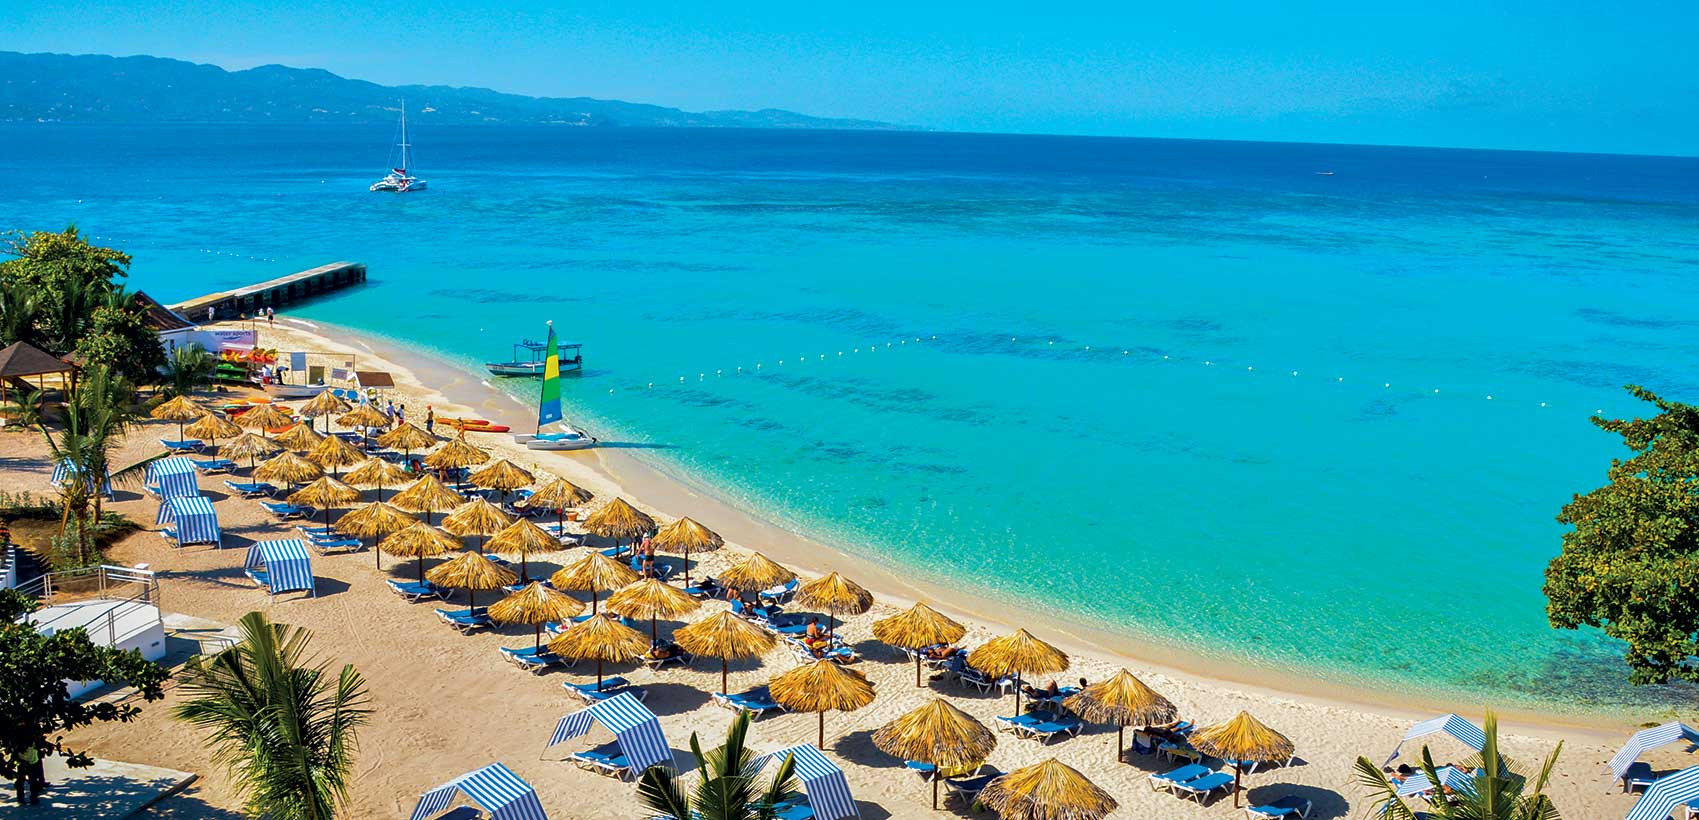 Discover Jamaica with Transat